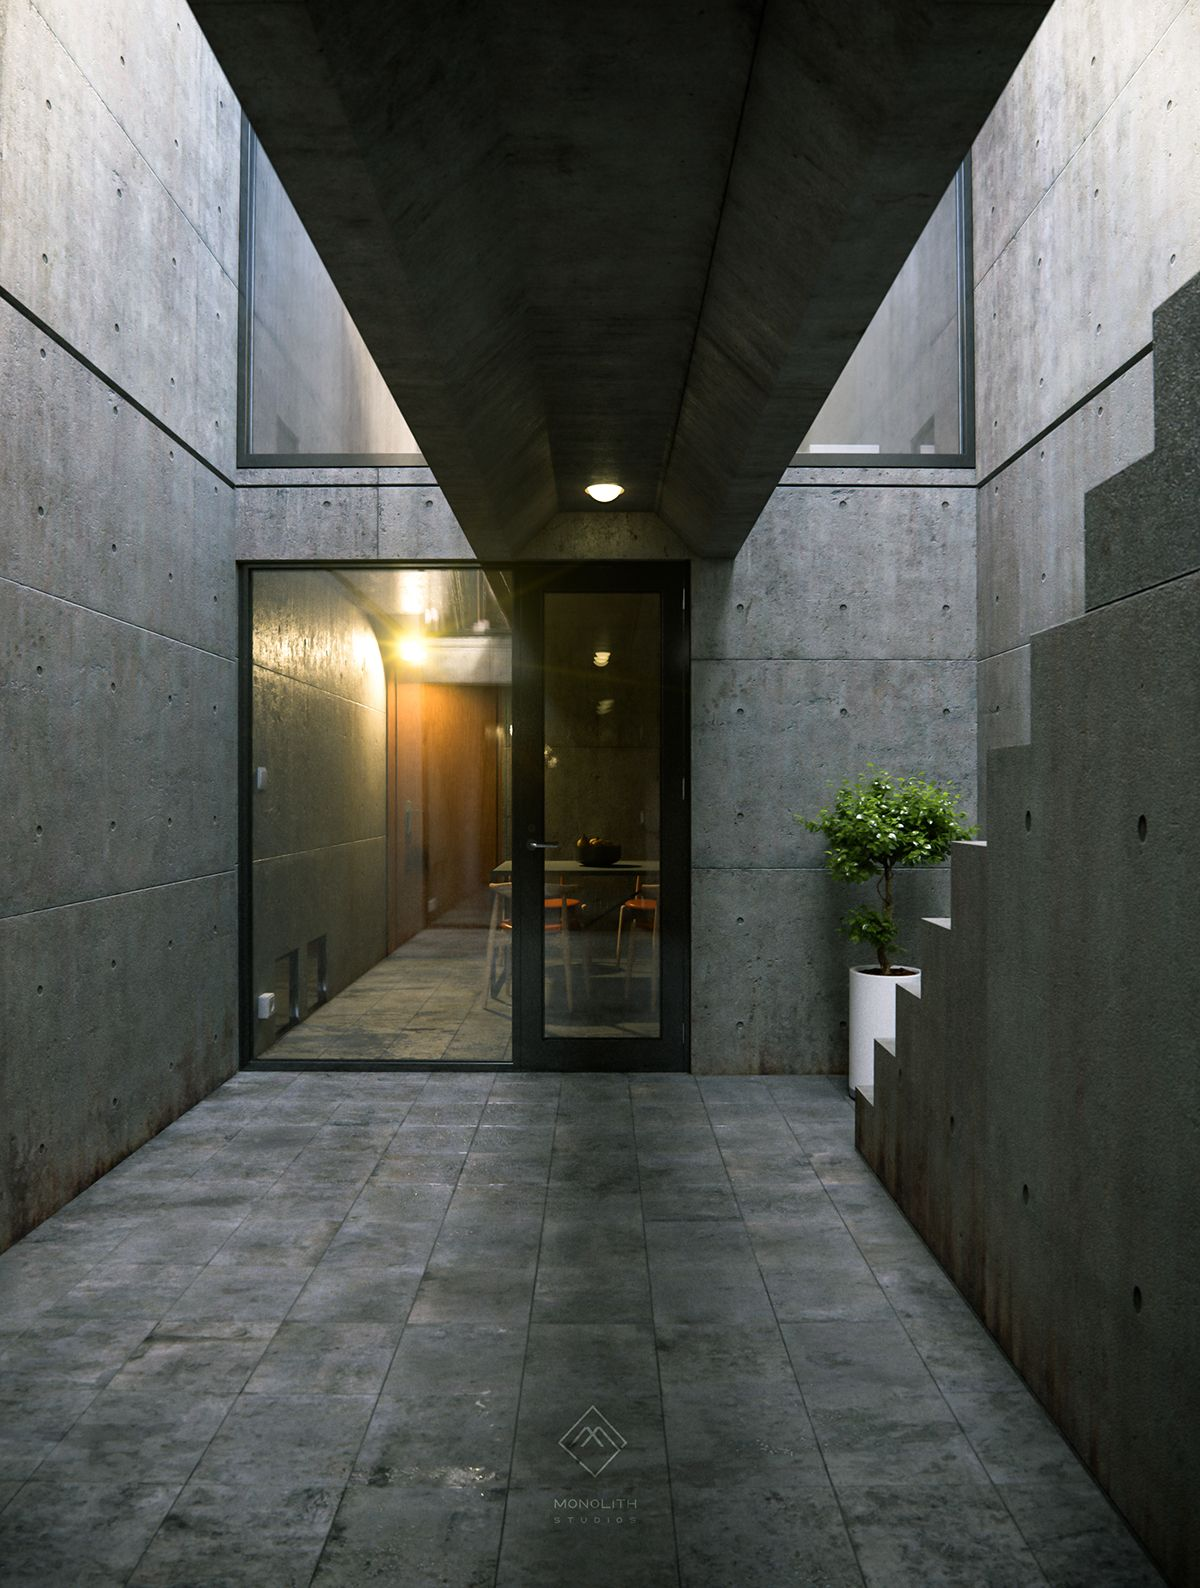 tadao ando azuma house on behance modern architecture. Black Bedroom Furniture Sets. Home Design Ideas